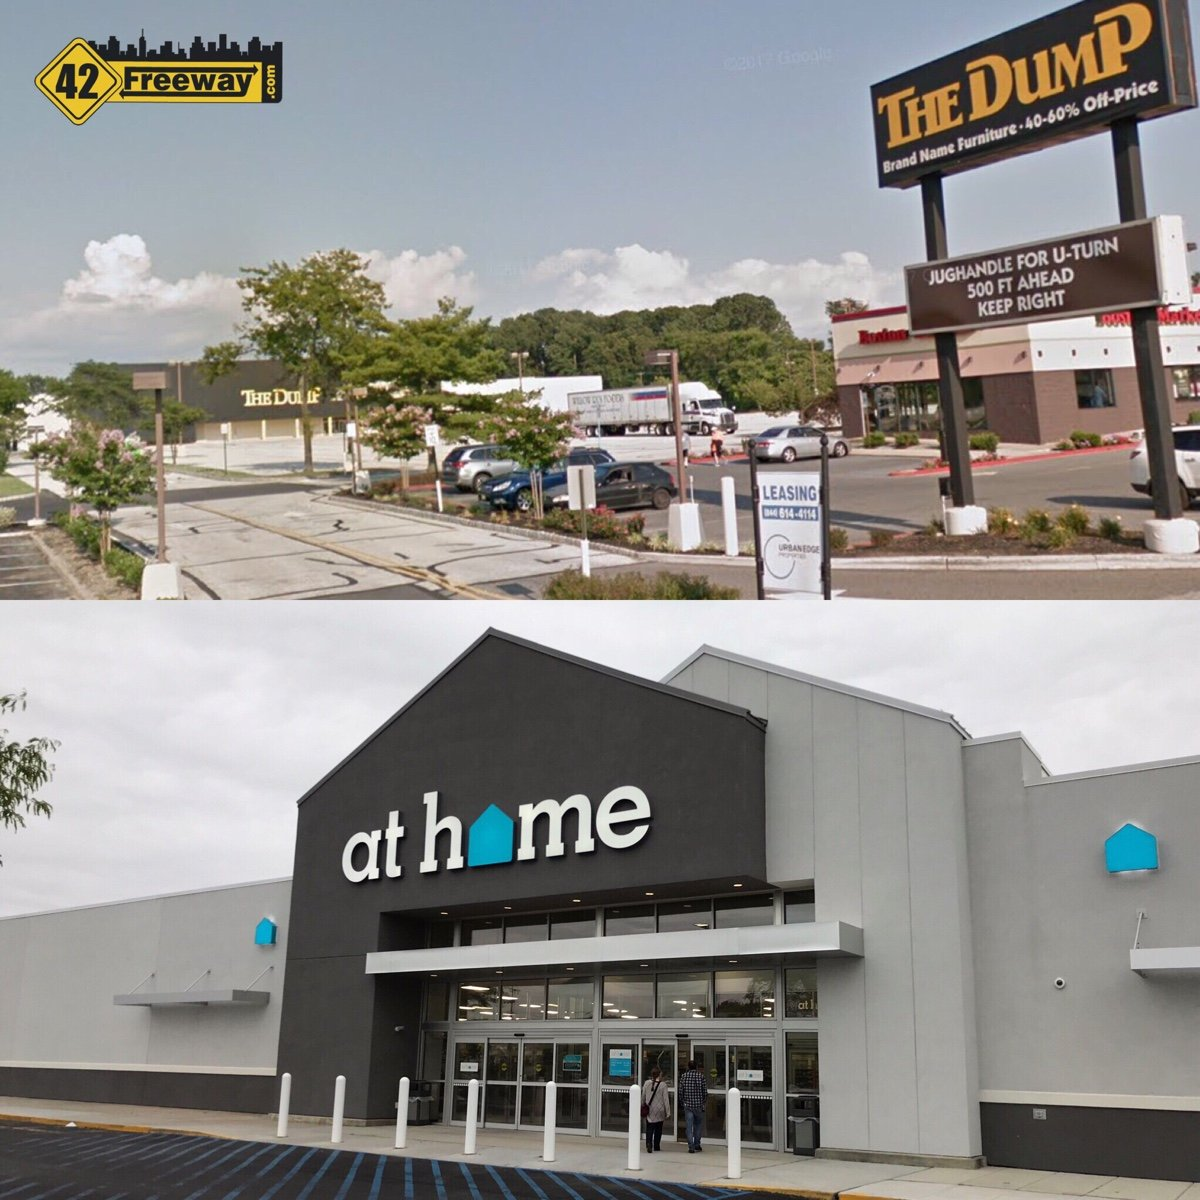 """At Home"" Store Coming to Washington Township's The Dump Location (Leasing Company Site)."